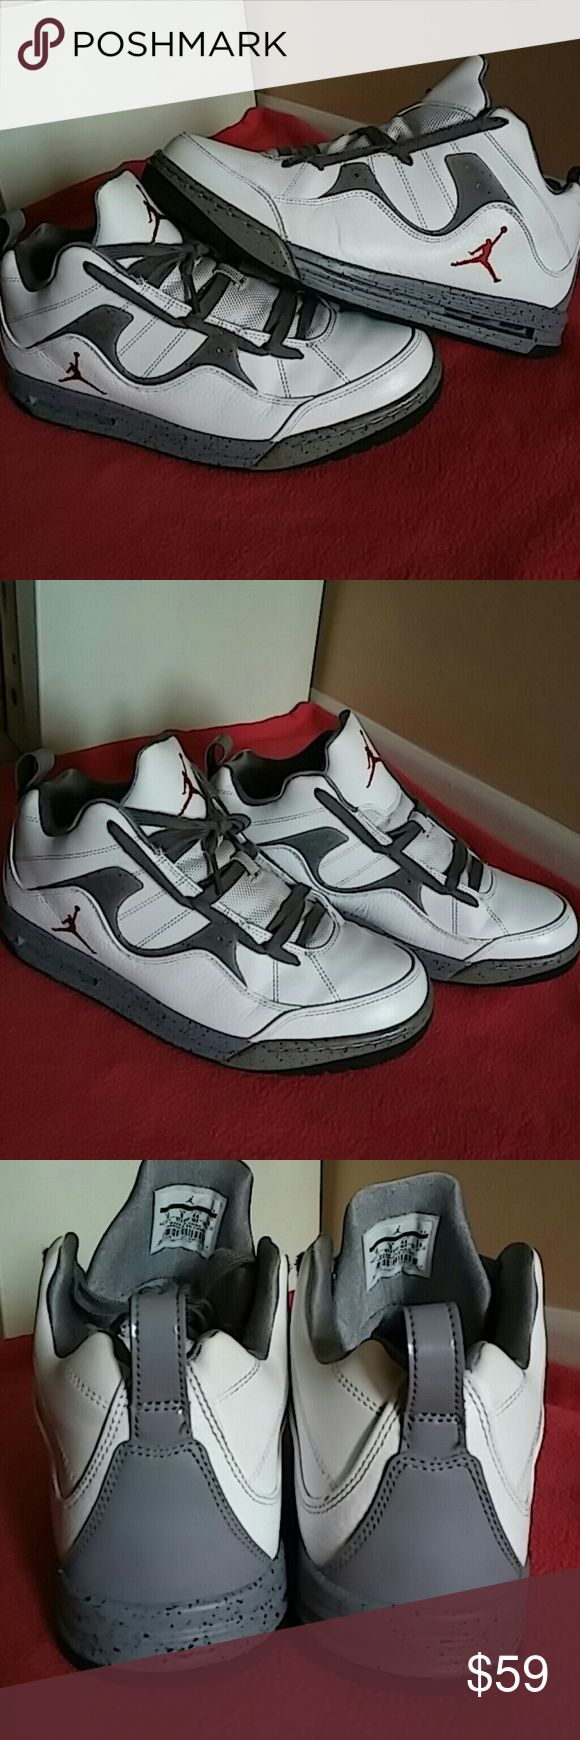 17 Best ideas about Jordan Sneakers on Pinterest | Jordans, Shoes